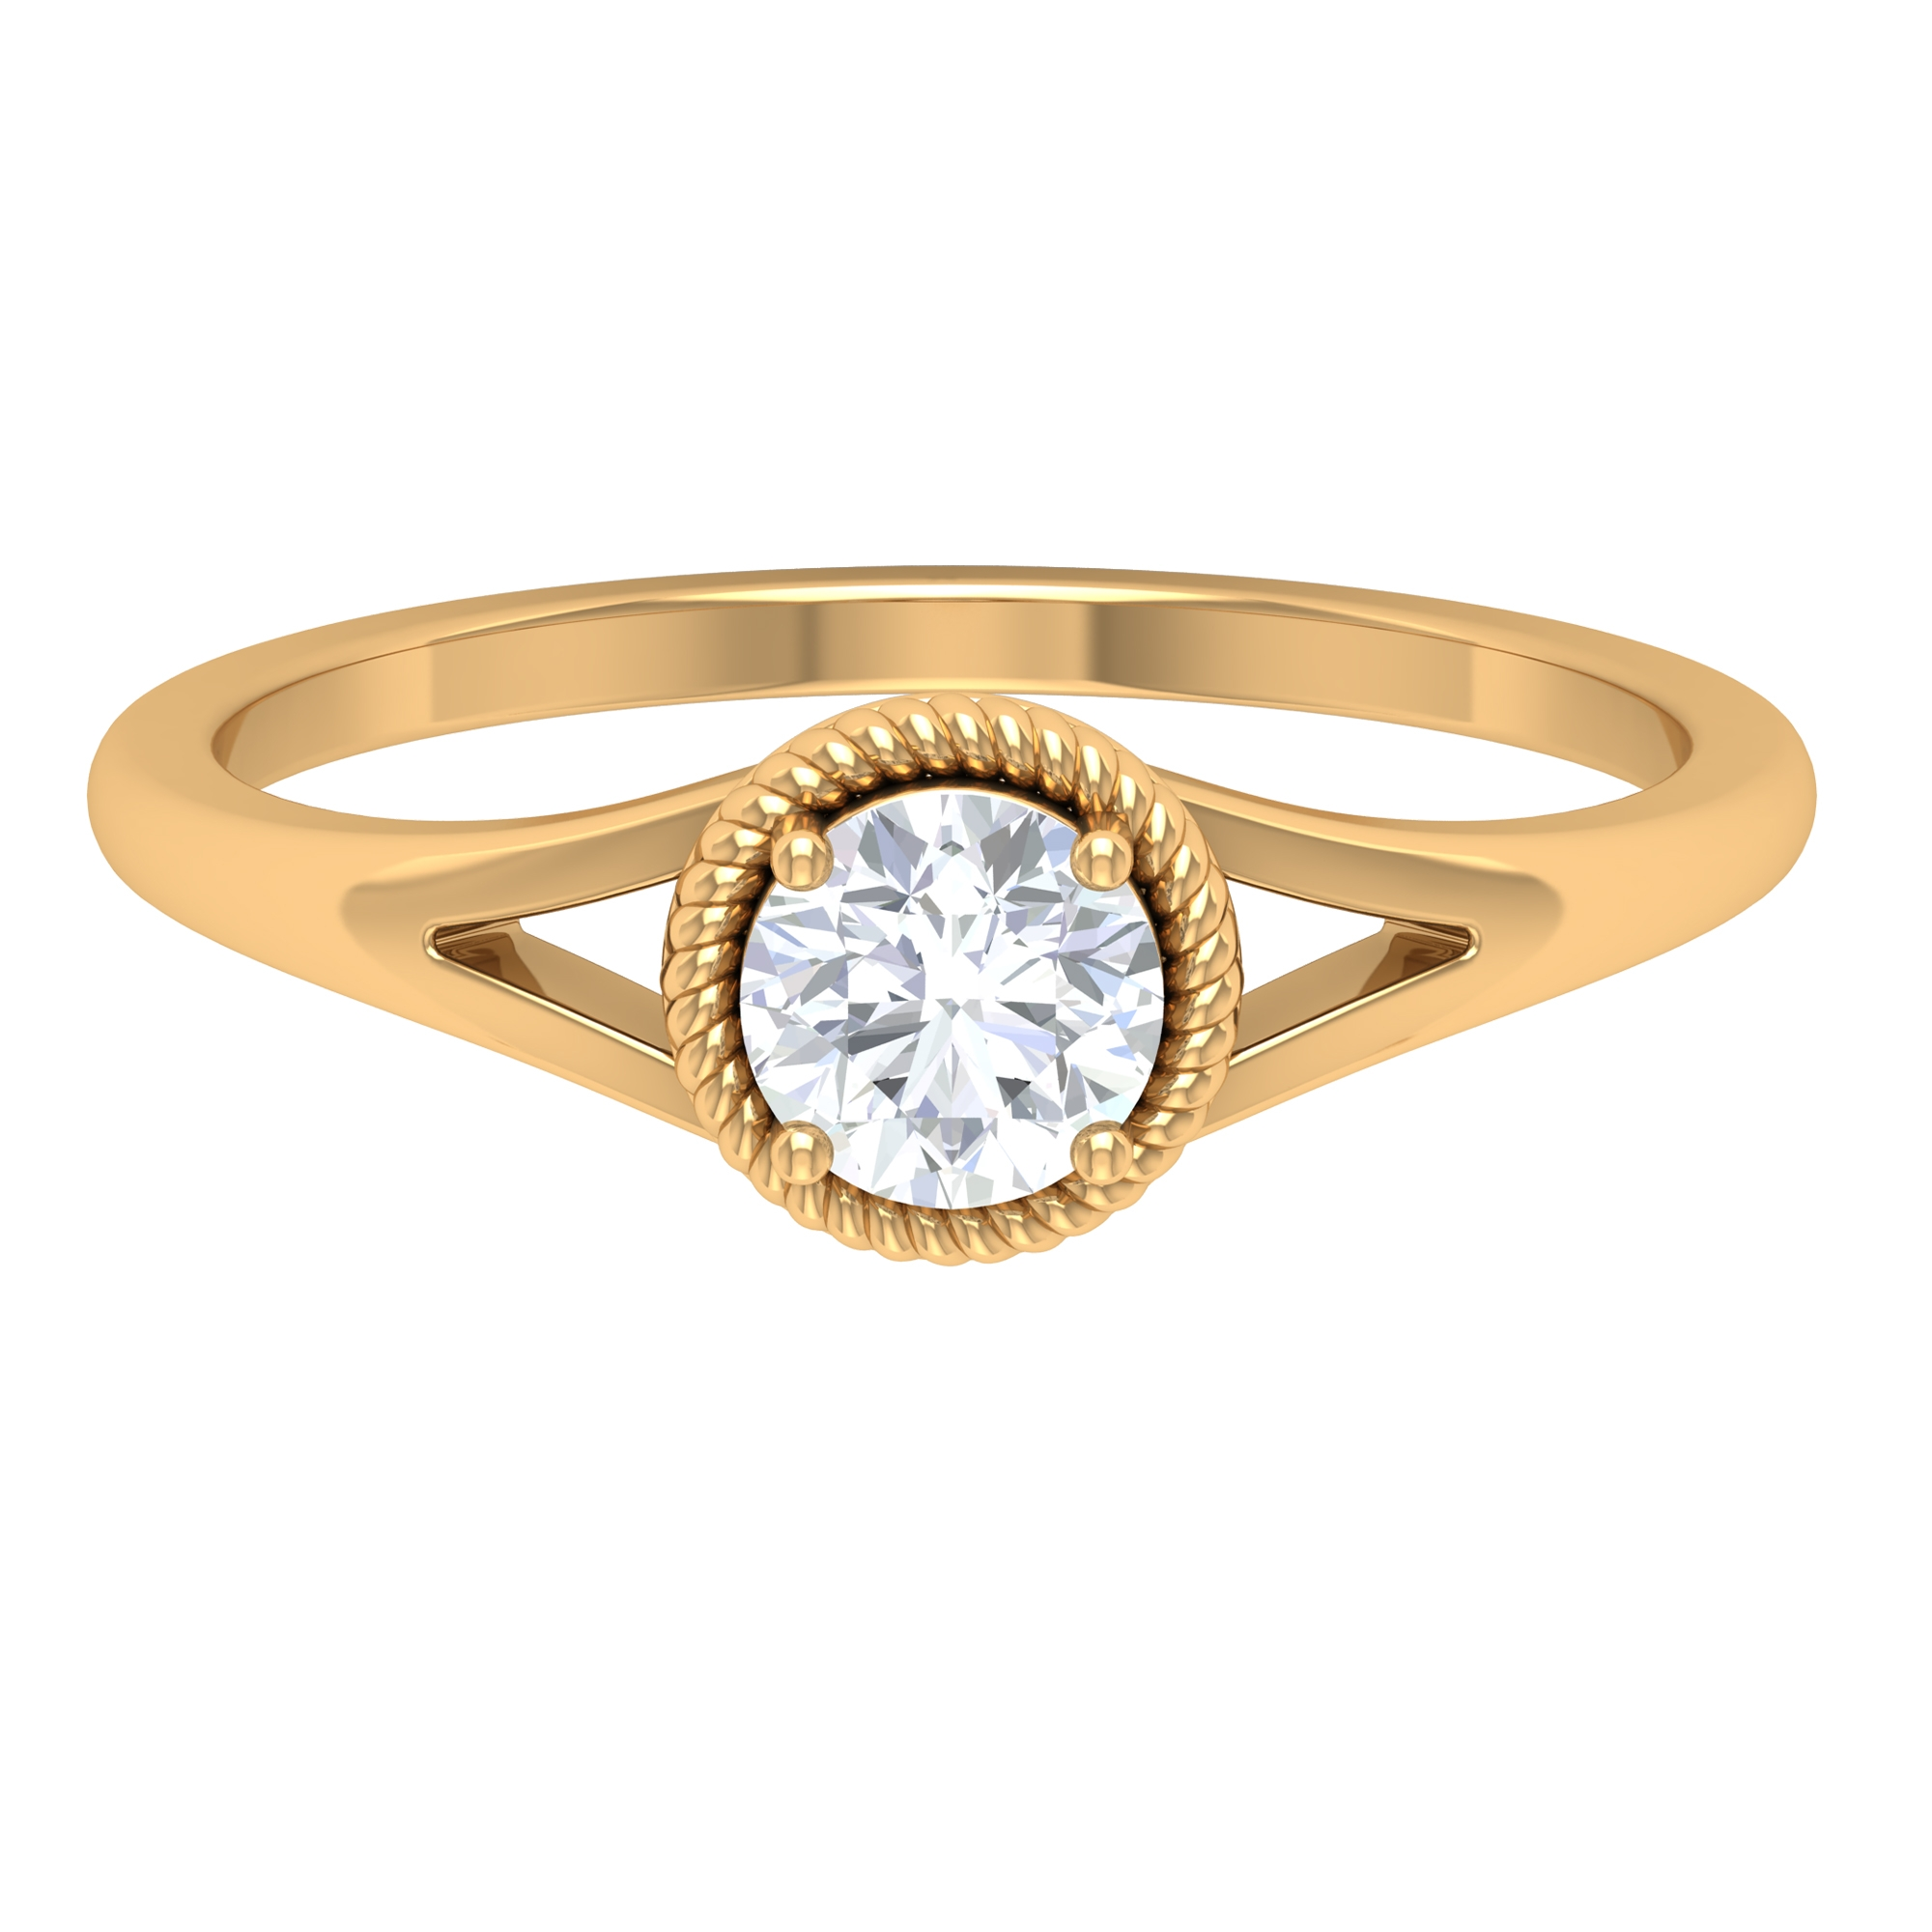 5 MM Round Cut Diamond Solitaire Ring in Prong Setting with Rope Frame and Split Shank